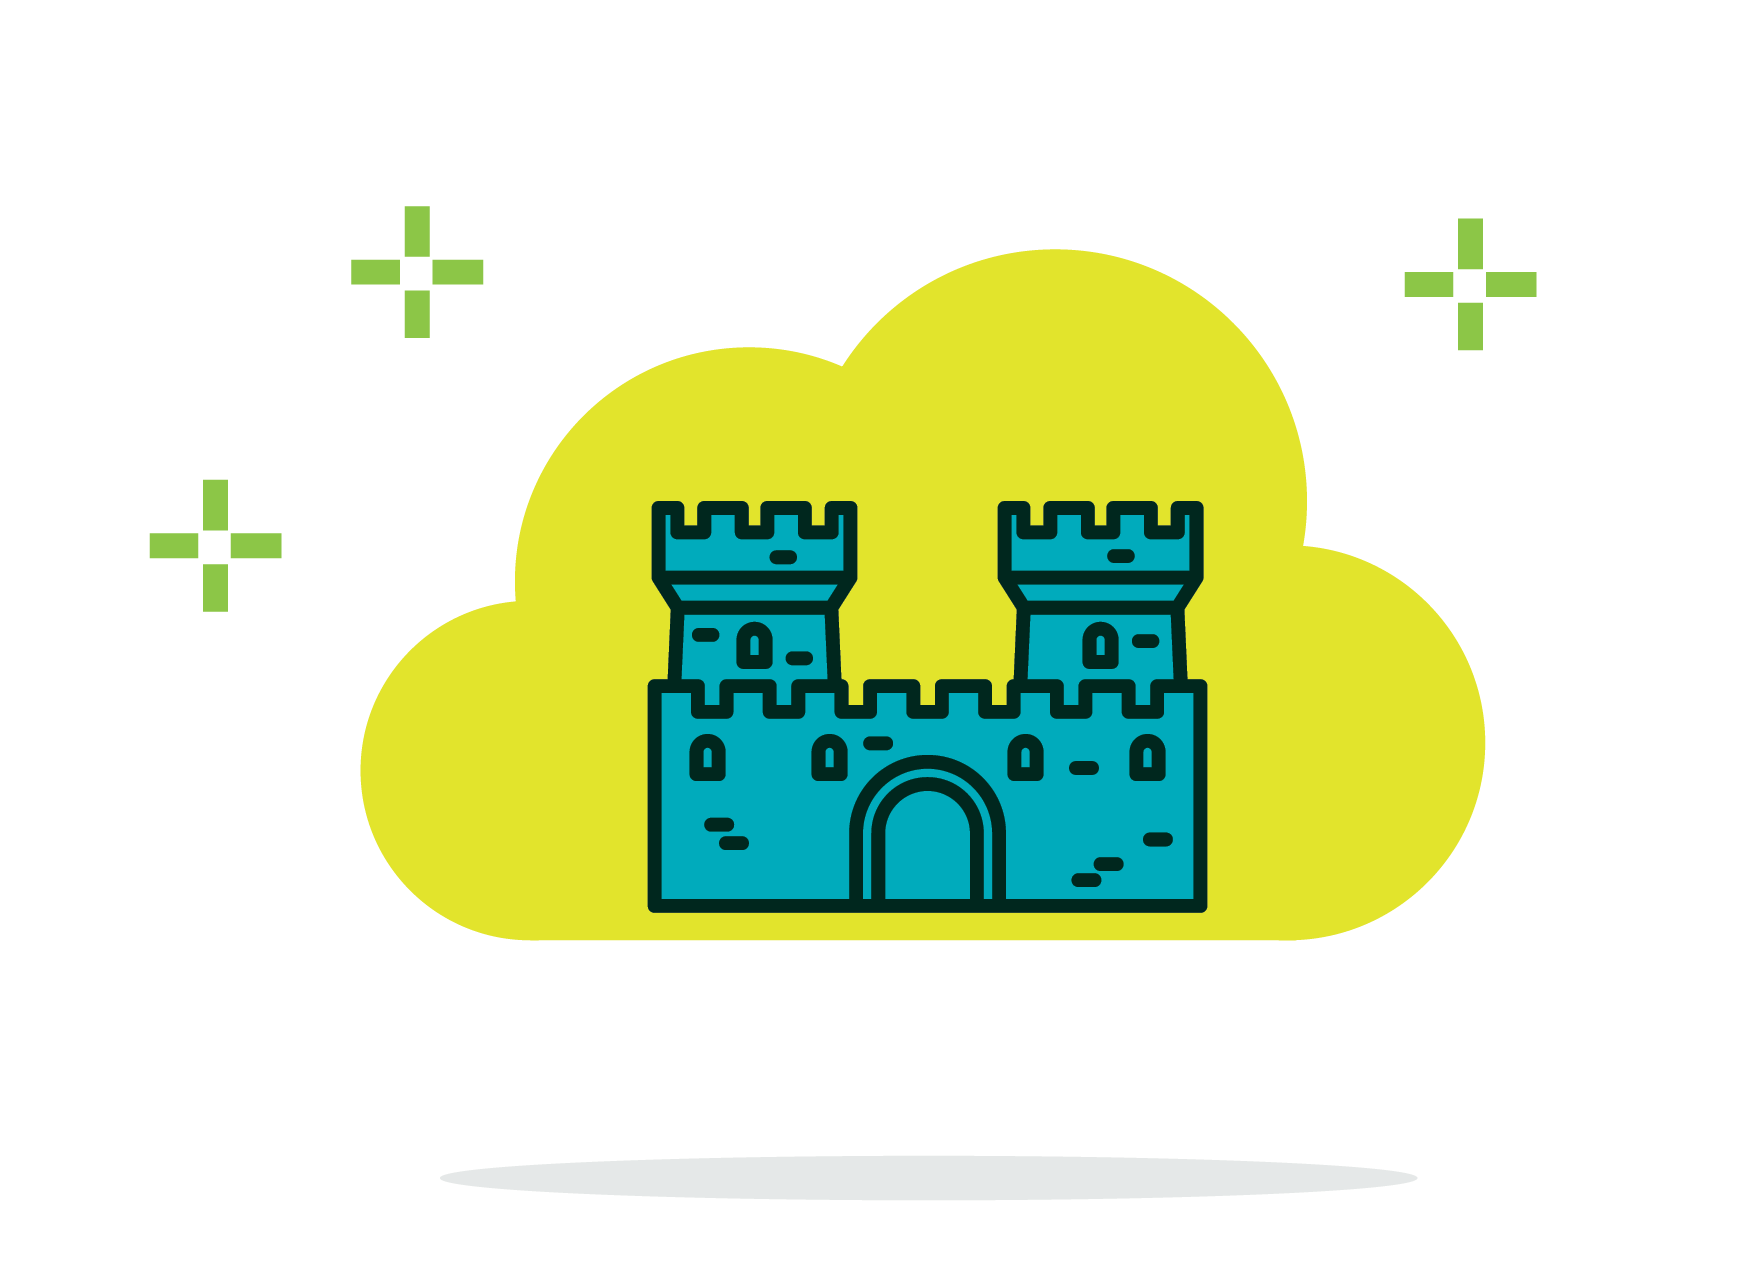 Cloud based technology powering. Europe clipart traceable